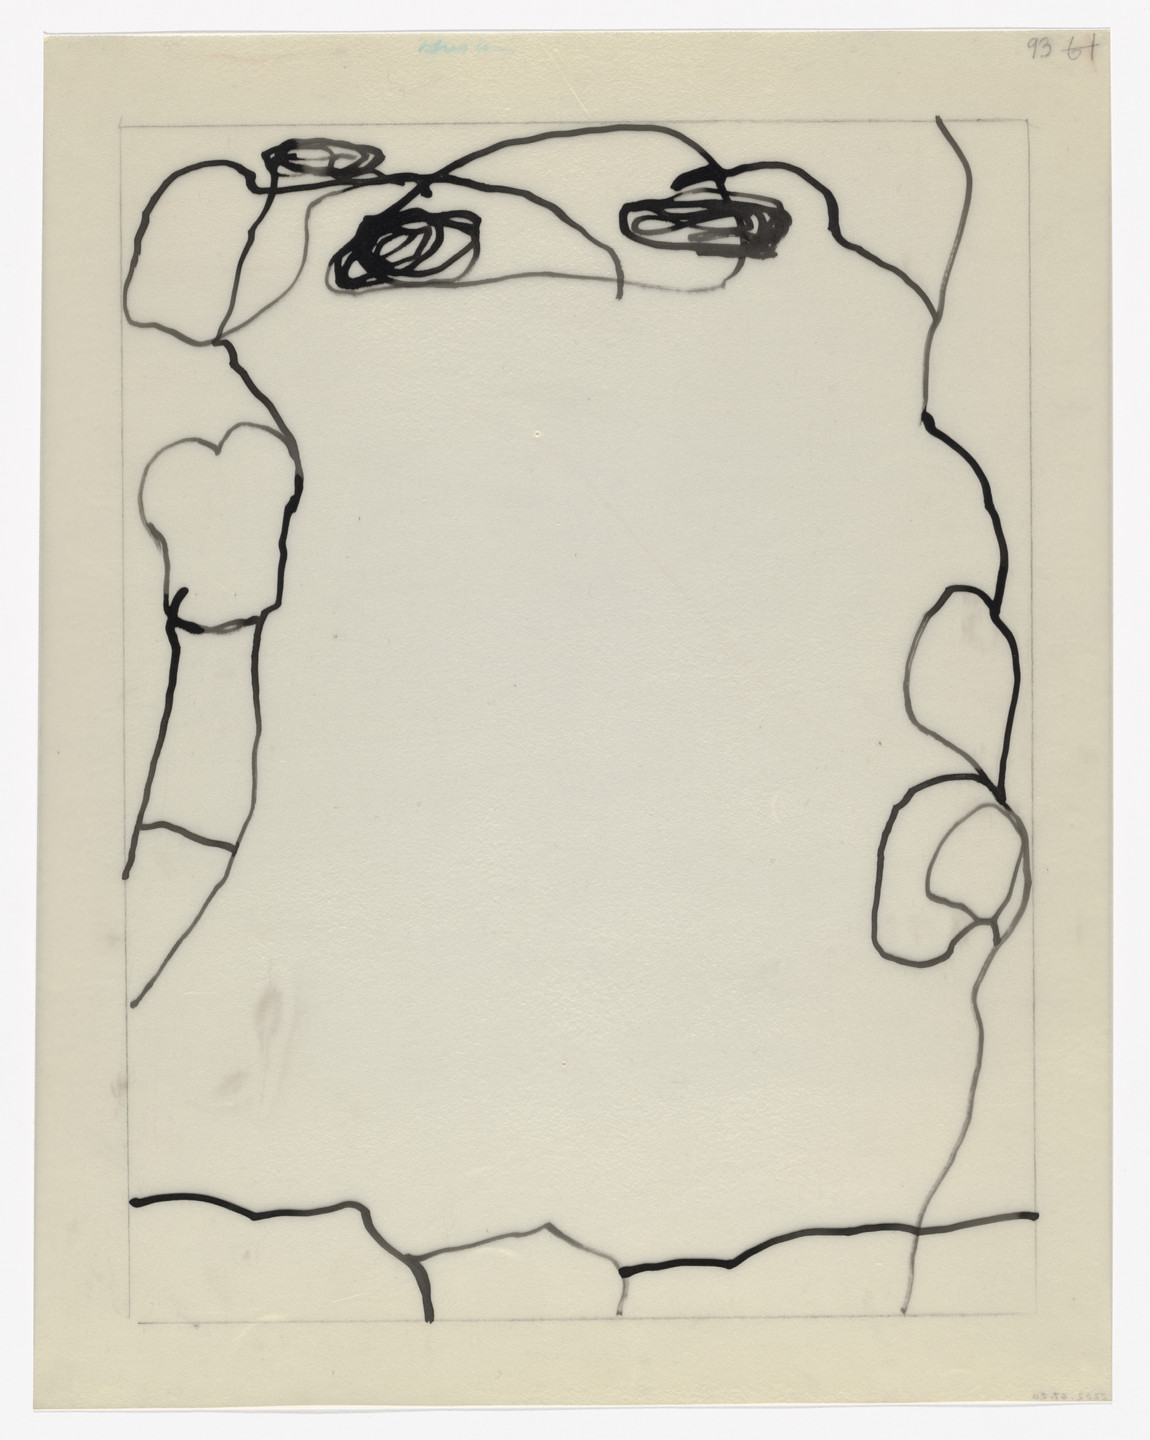 Philip Guston. Preparatory drawing for In Memory of My Feelings. 1967